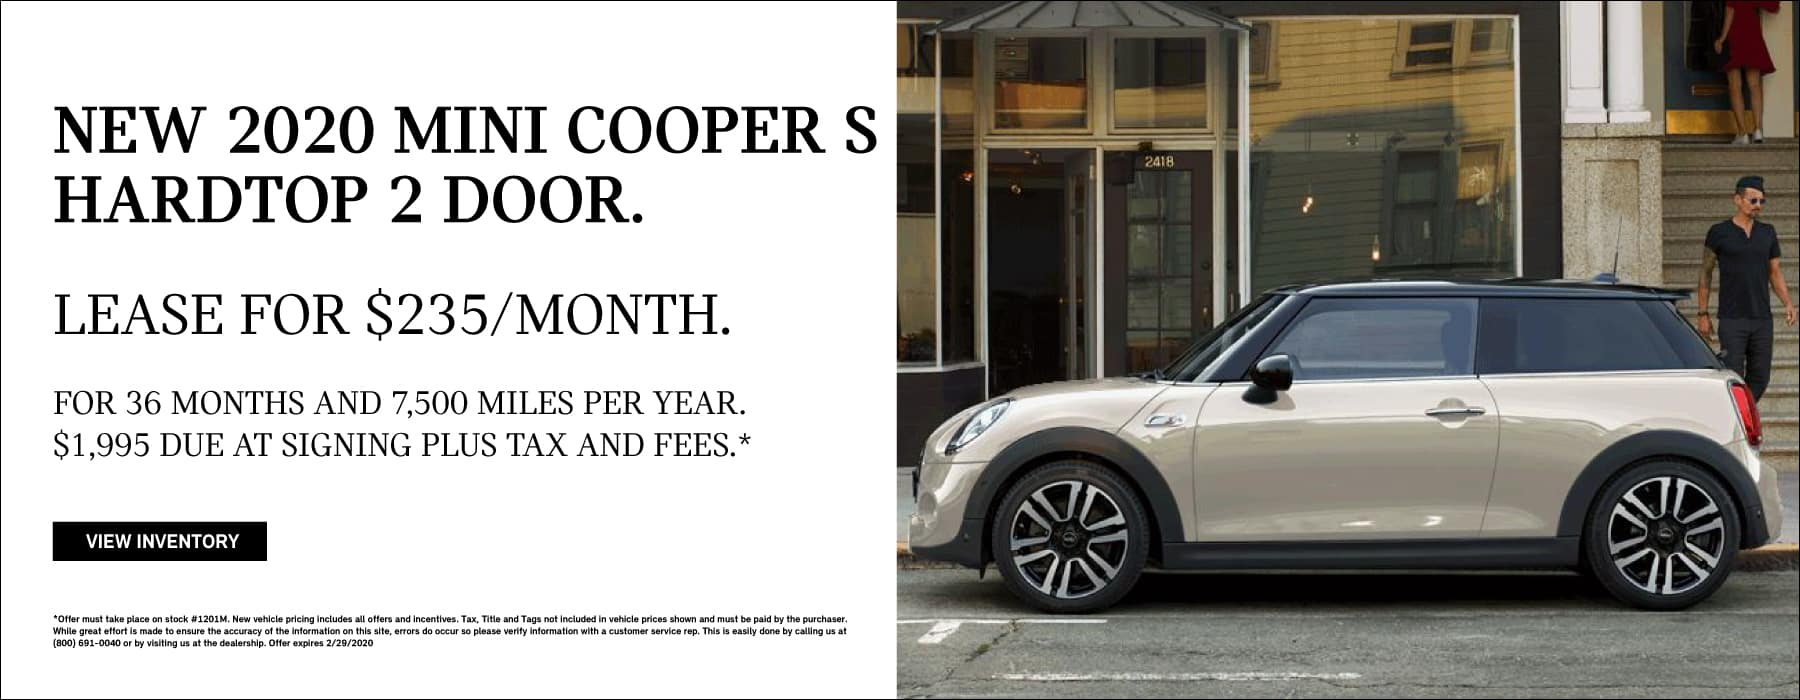 New 2020 MINI COOPER S HARDTOP 2 DOOR. Lease for $235/ month. For 36 months and 7,500 miles per year $1,995 due at signing plus tax and fees.* Click to view inventory.